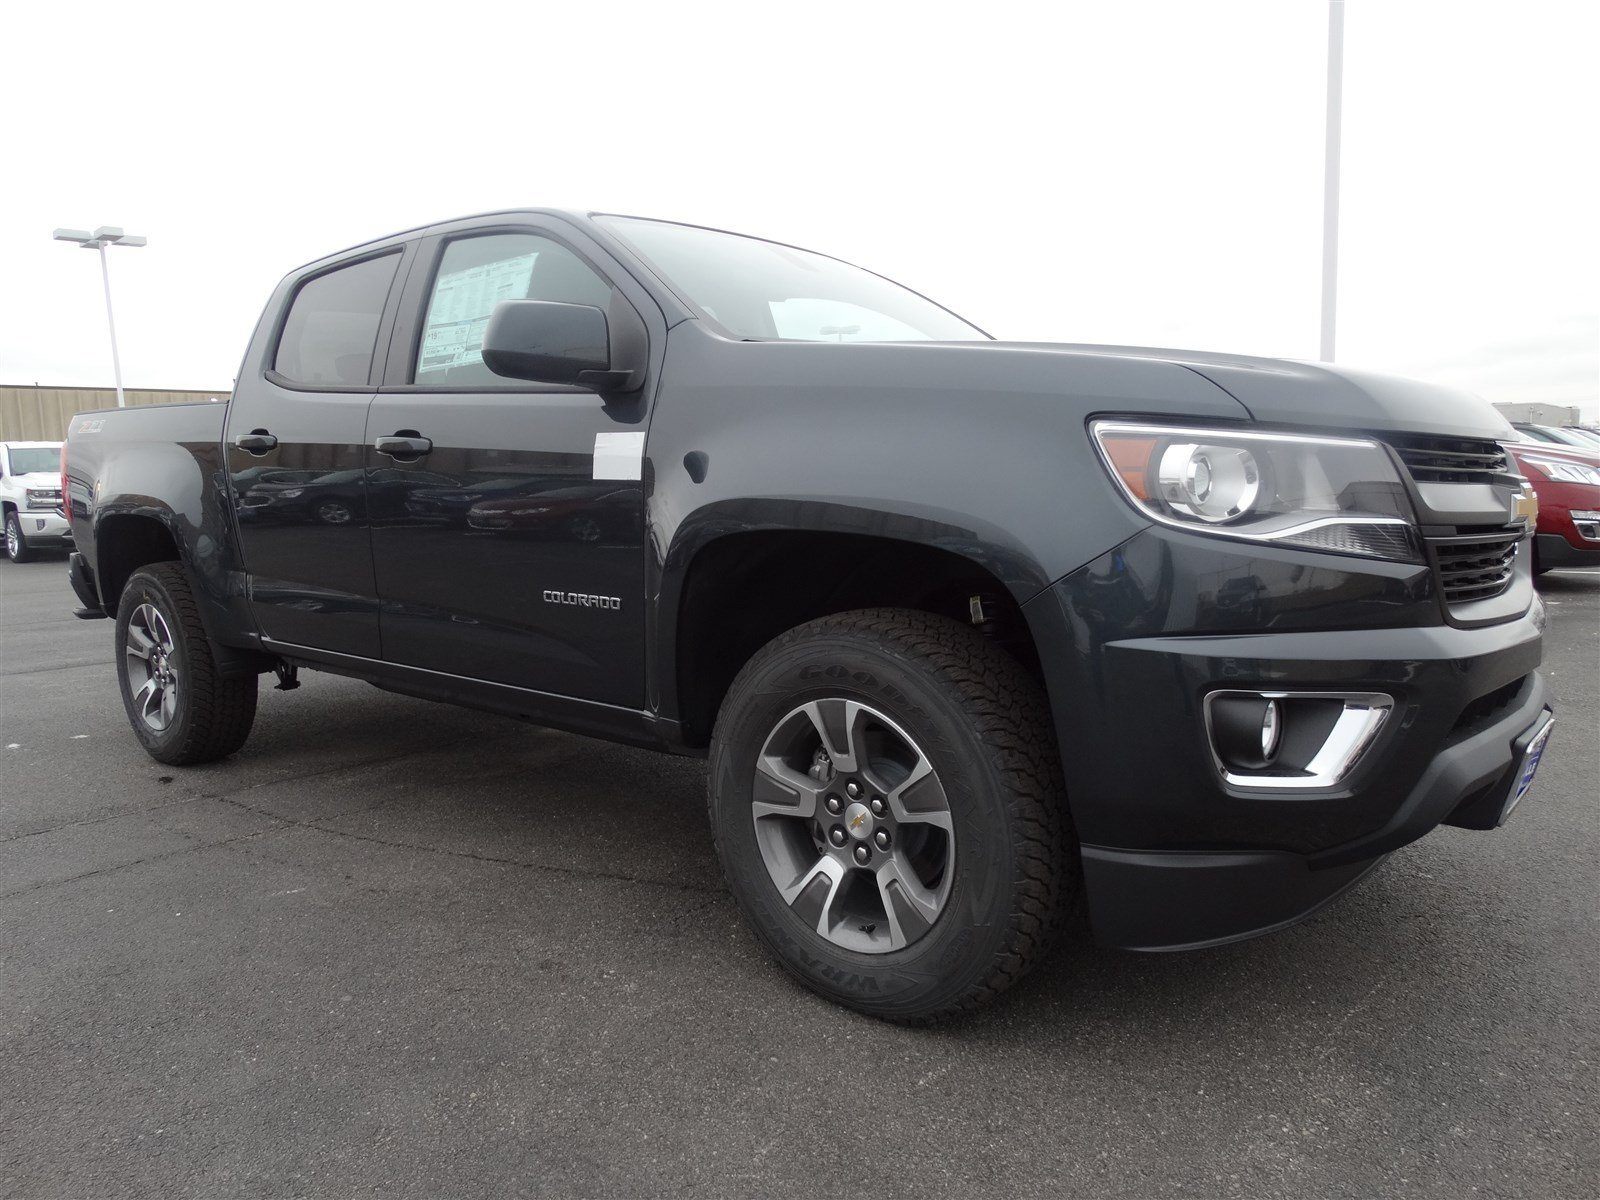 new 2017 chevrolet colorado 4wd z71 crew cab pickup in naperville t6243 chevrolet of naperville. Black Bedroom Furniture Sets. Home Design Ideas